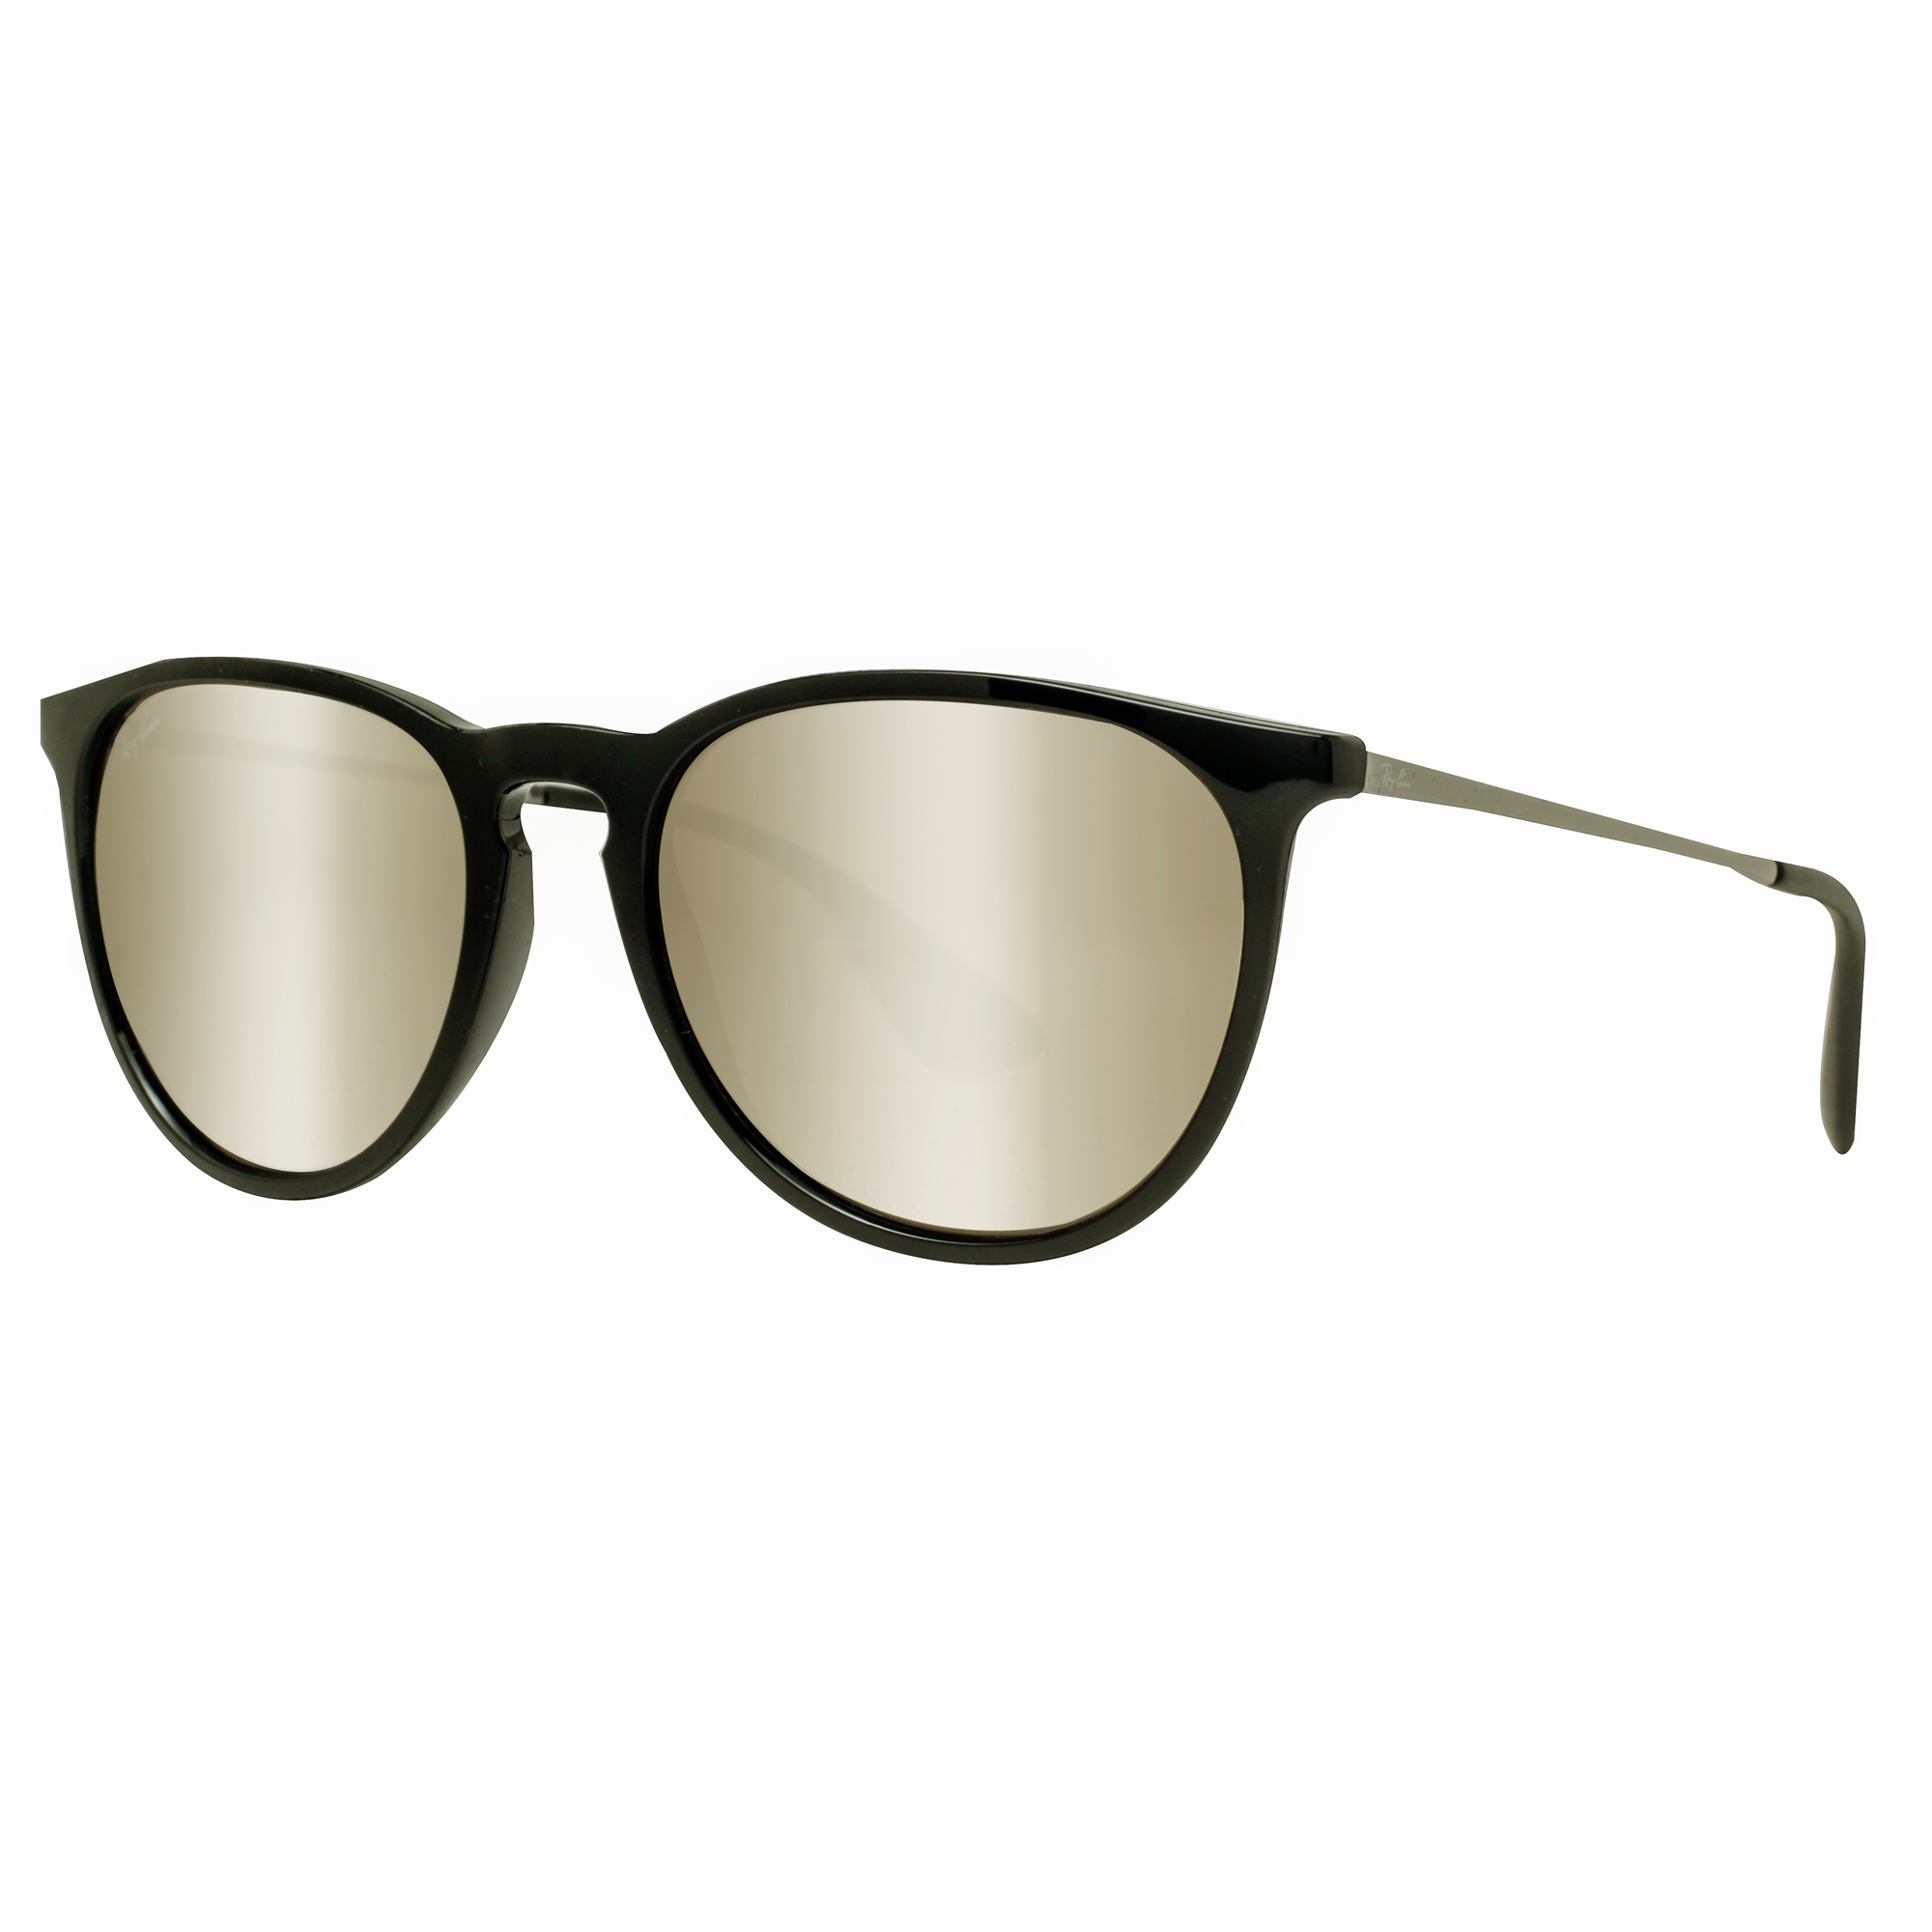 b0d30a6de3 ... coupon code for ray ban erika rb4171 round mirror sunglasses a03fa b2517